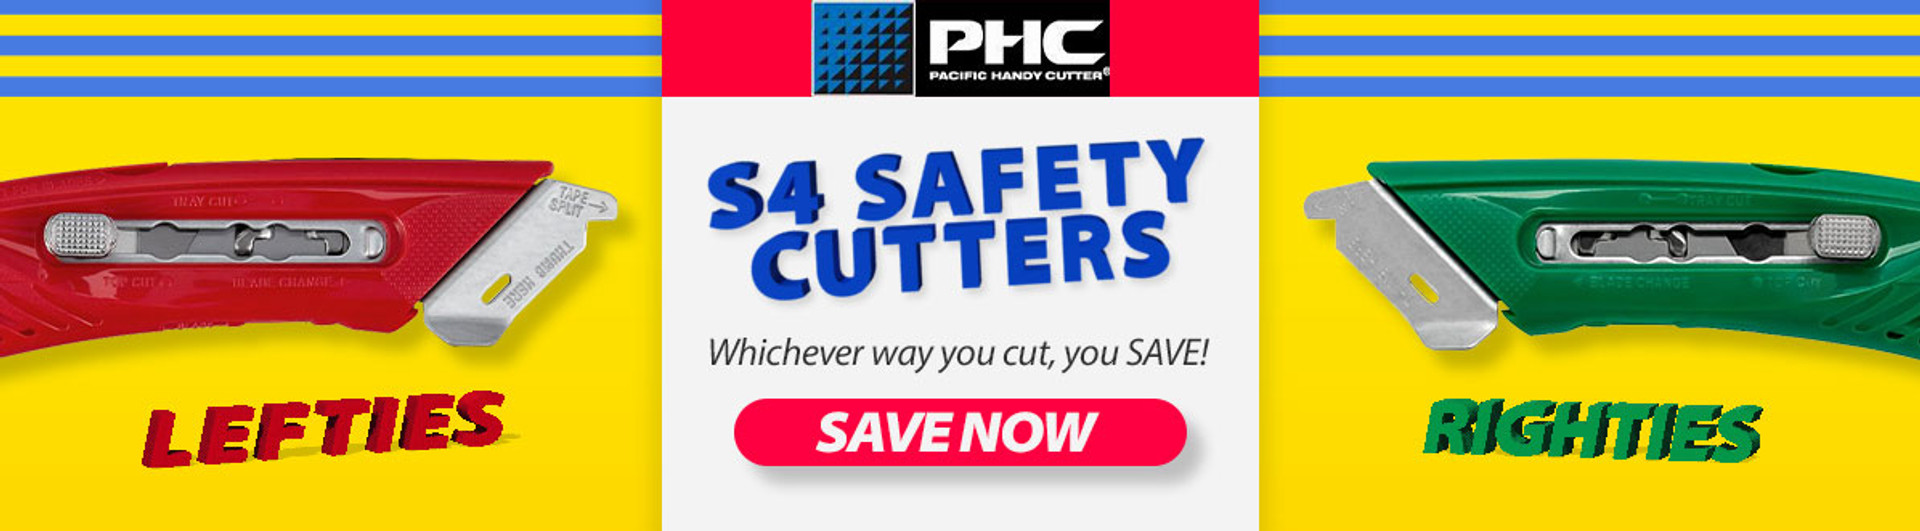 S4 Safety Cutters